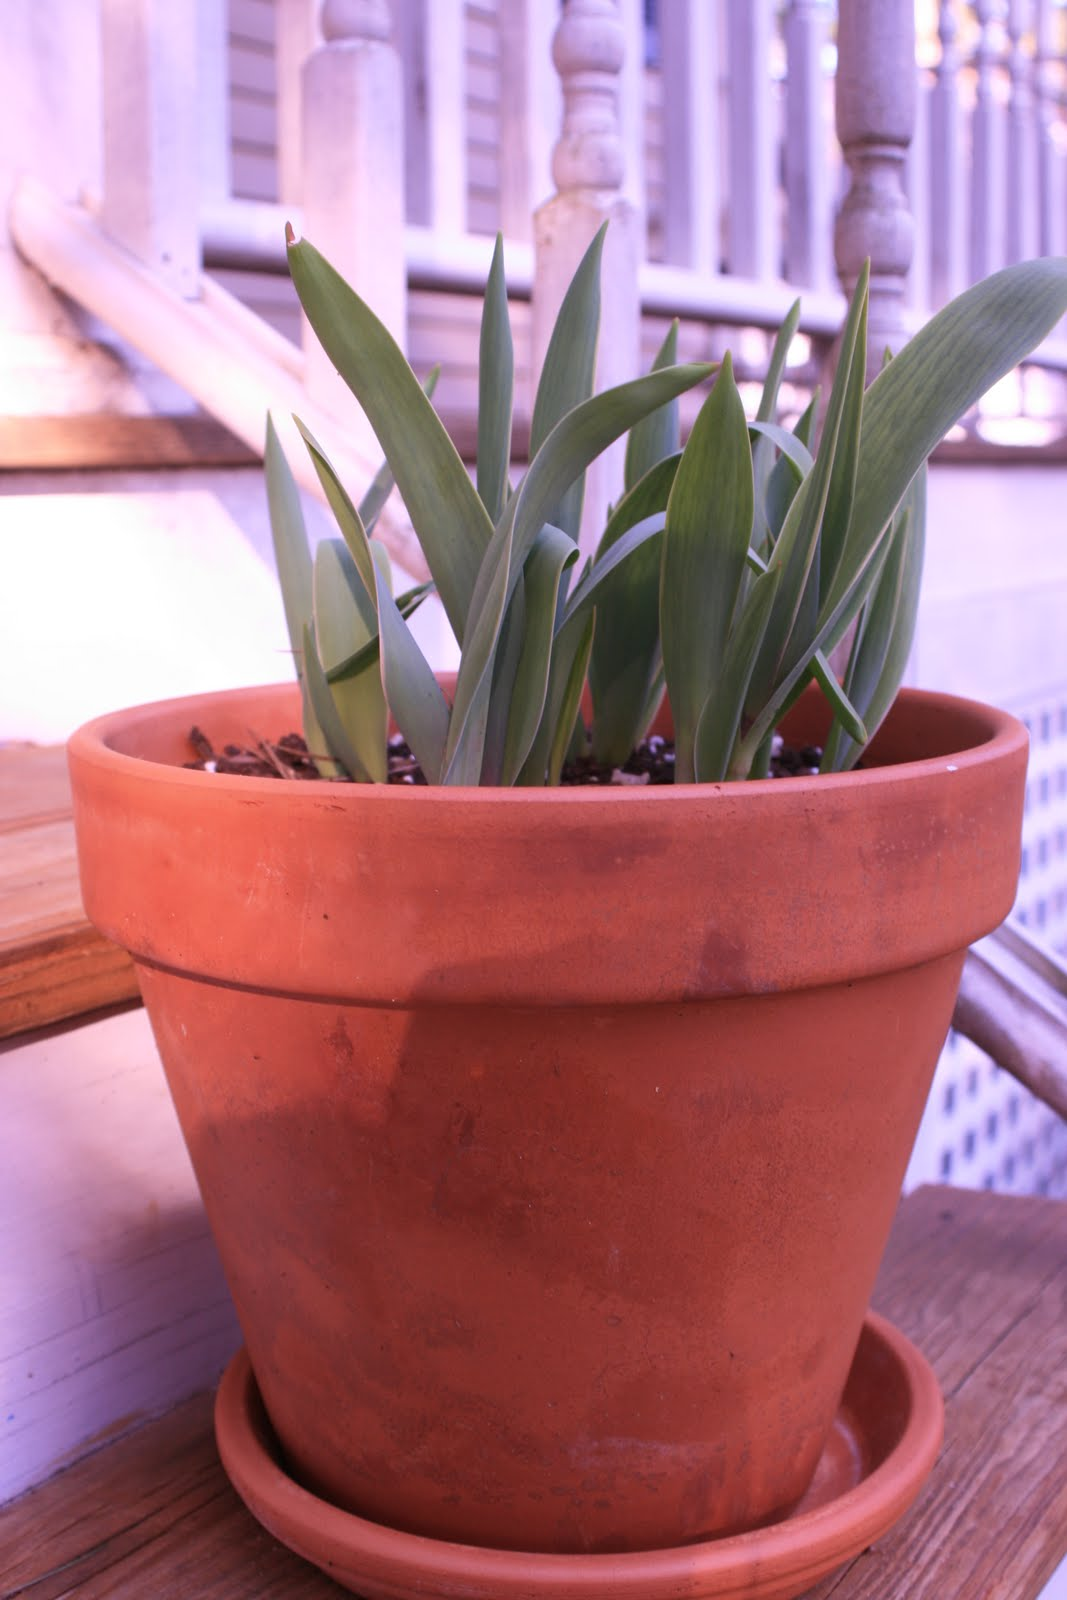 Sign of Spring #2nearly budding tulips that my ever so thoughtful